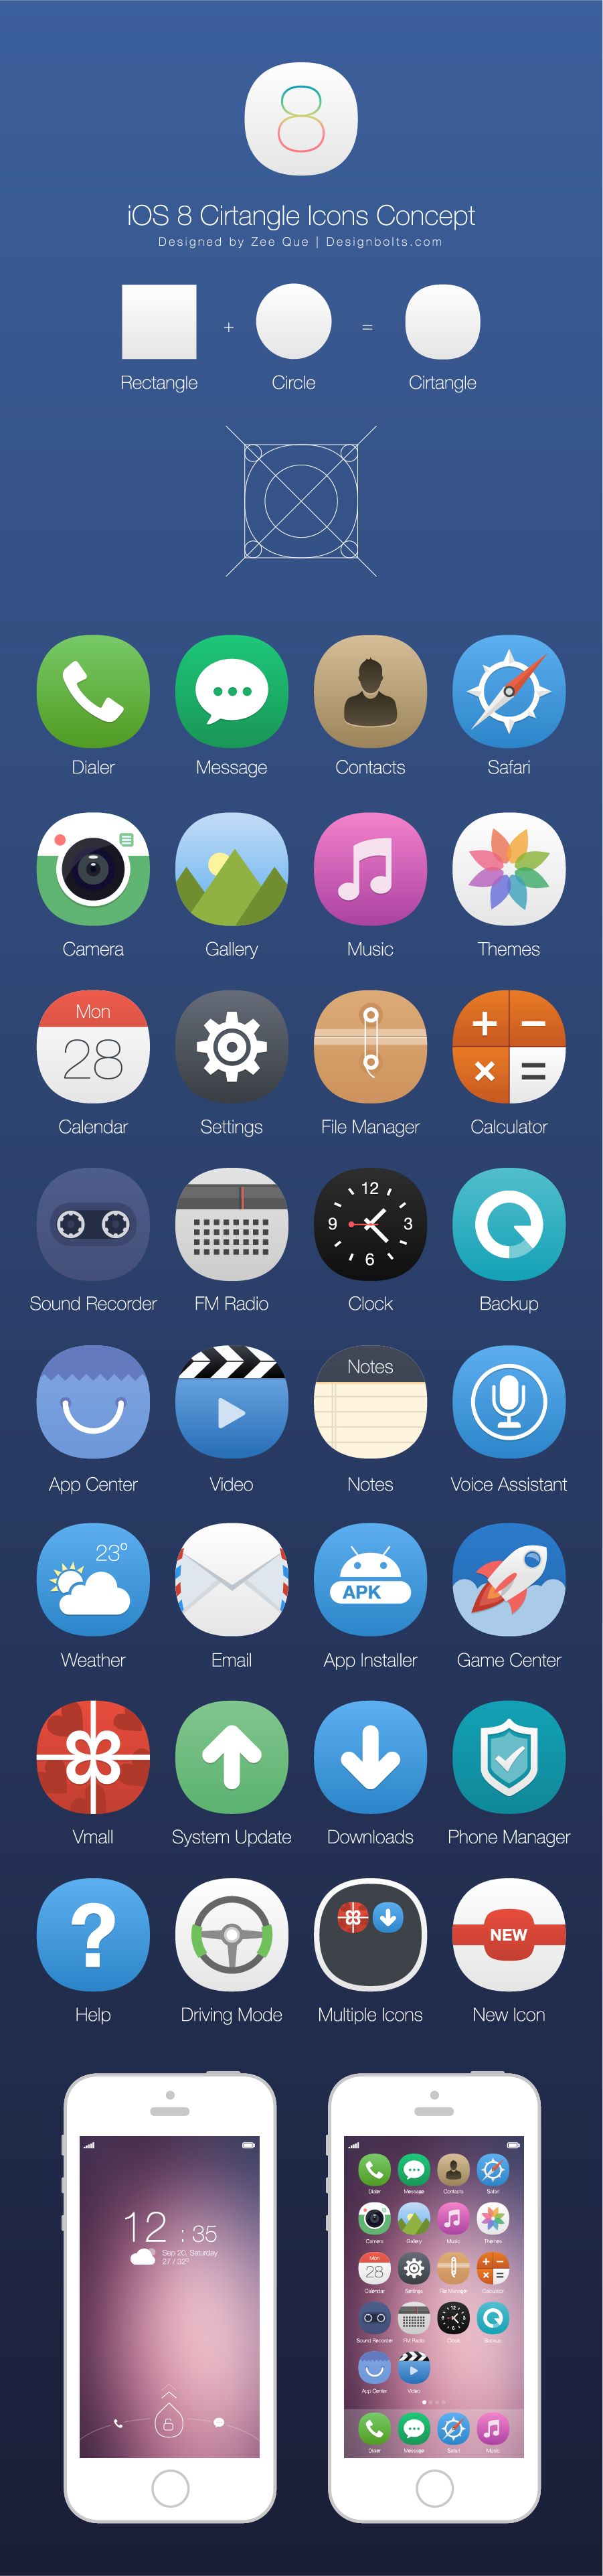 Cirtangle iOS 8 Icons Concept + Free Icons to try 100